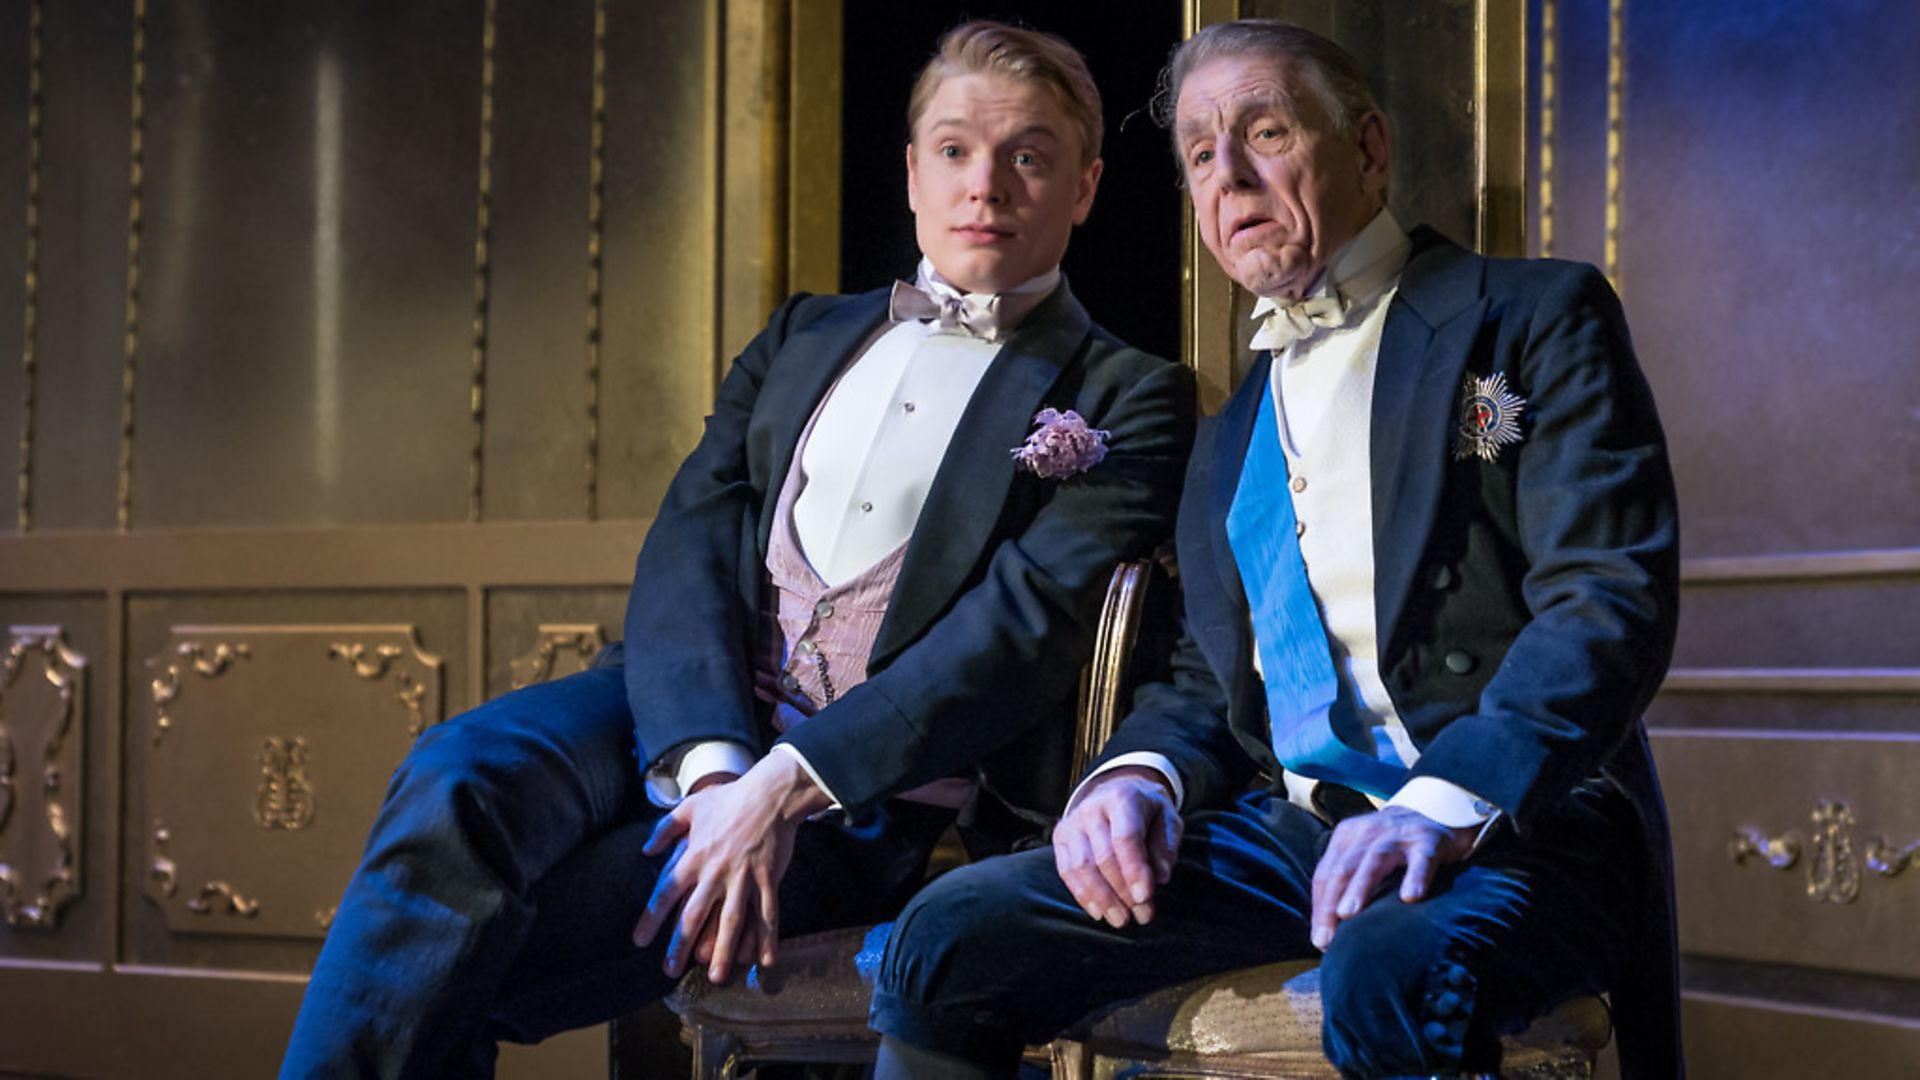 Edward Fox as Lord Caversham and Freddie Fox as Lord Goring in An Ideal Husband. Photo: Contributed. - Credit: Archant